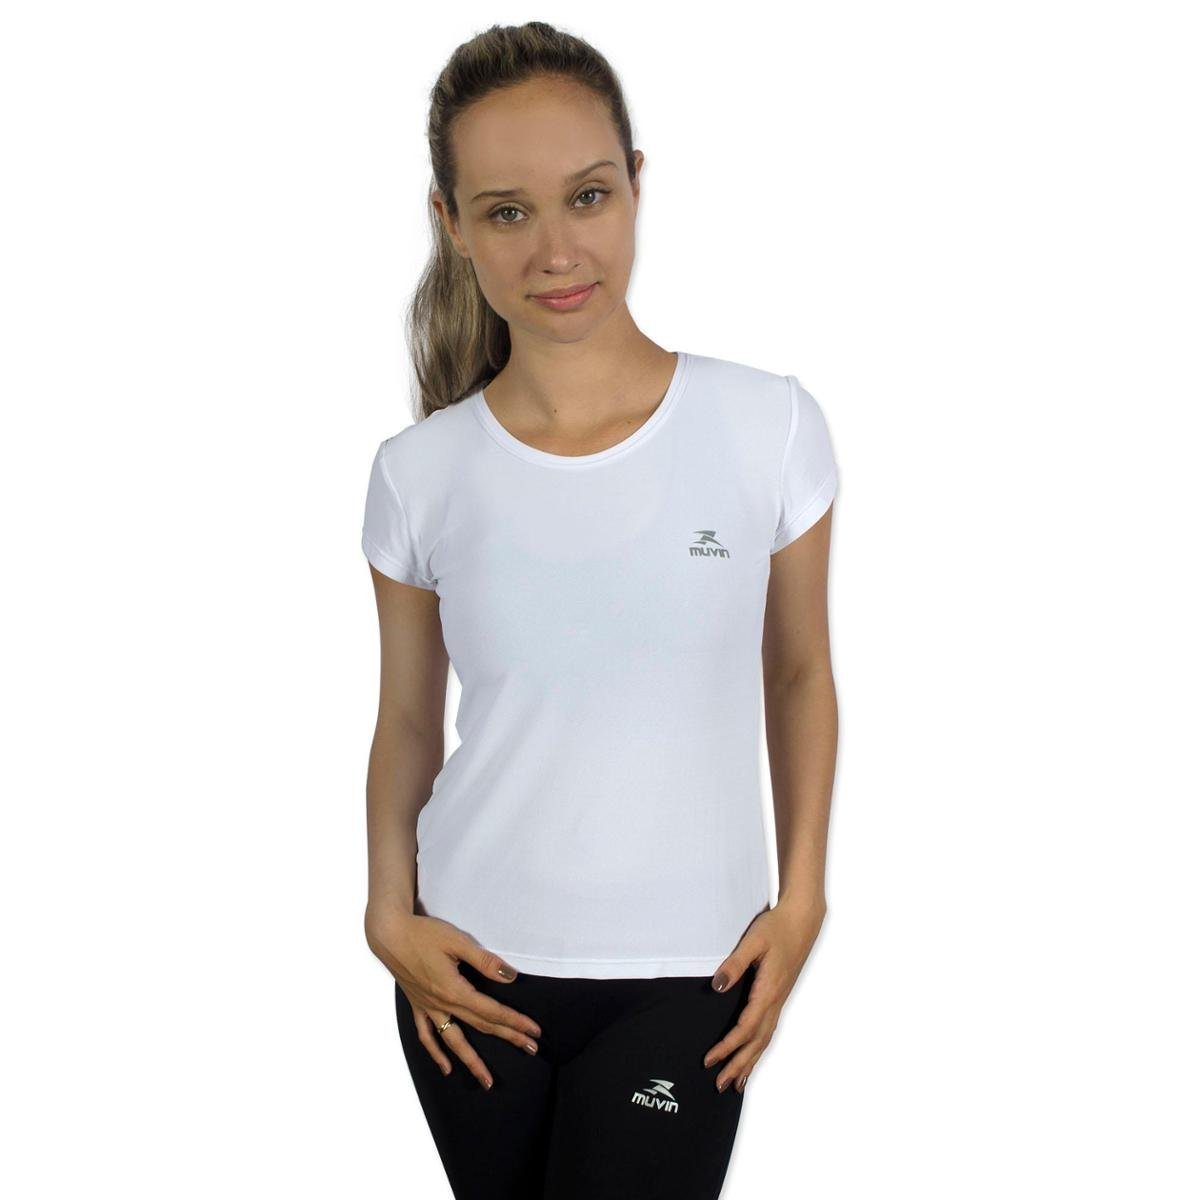 Running Branco Muvin Camiseta Color Running Muvin Muvin Branco Color Running Camiseta Branco Color Camiseta 6OFwfP